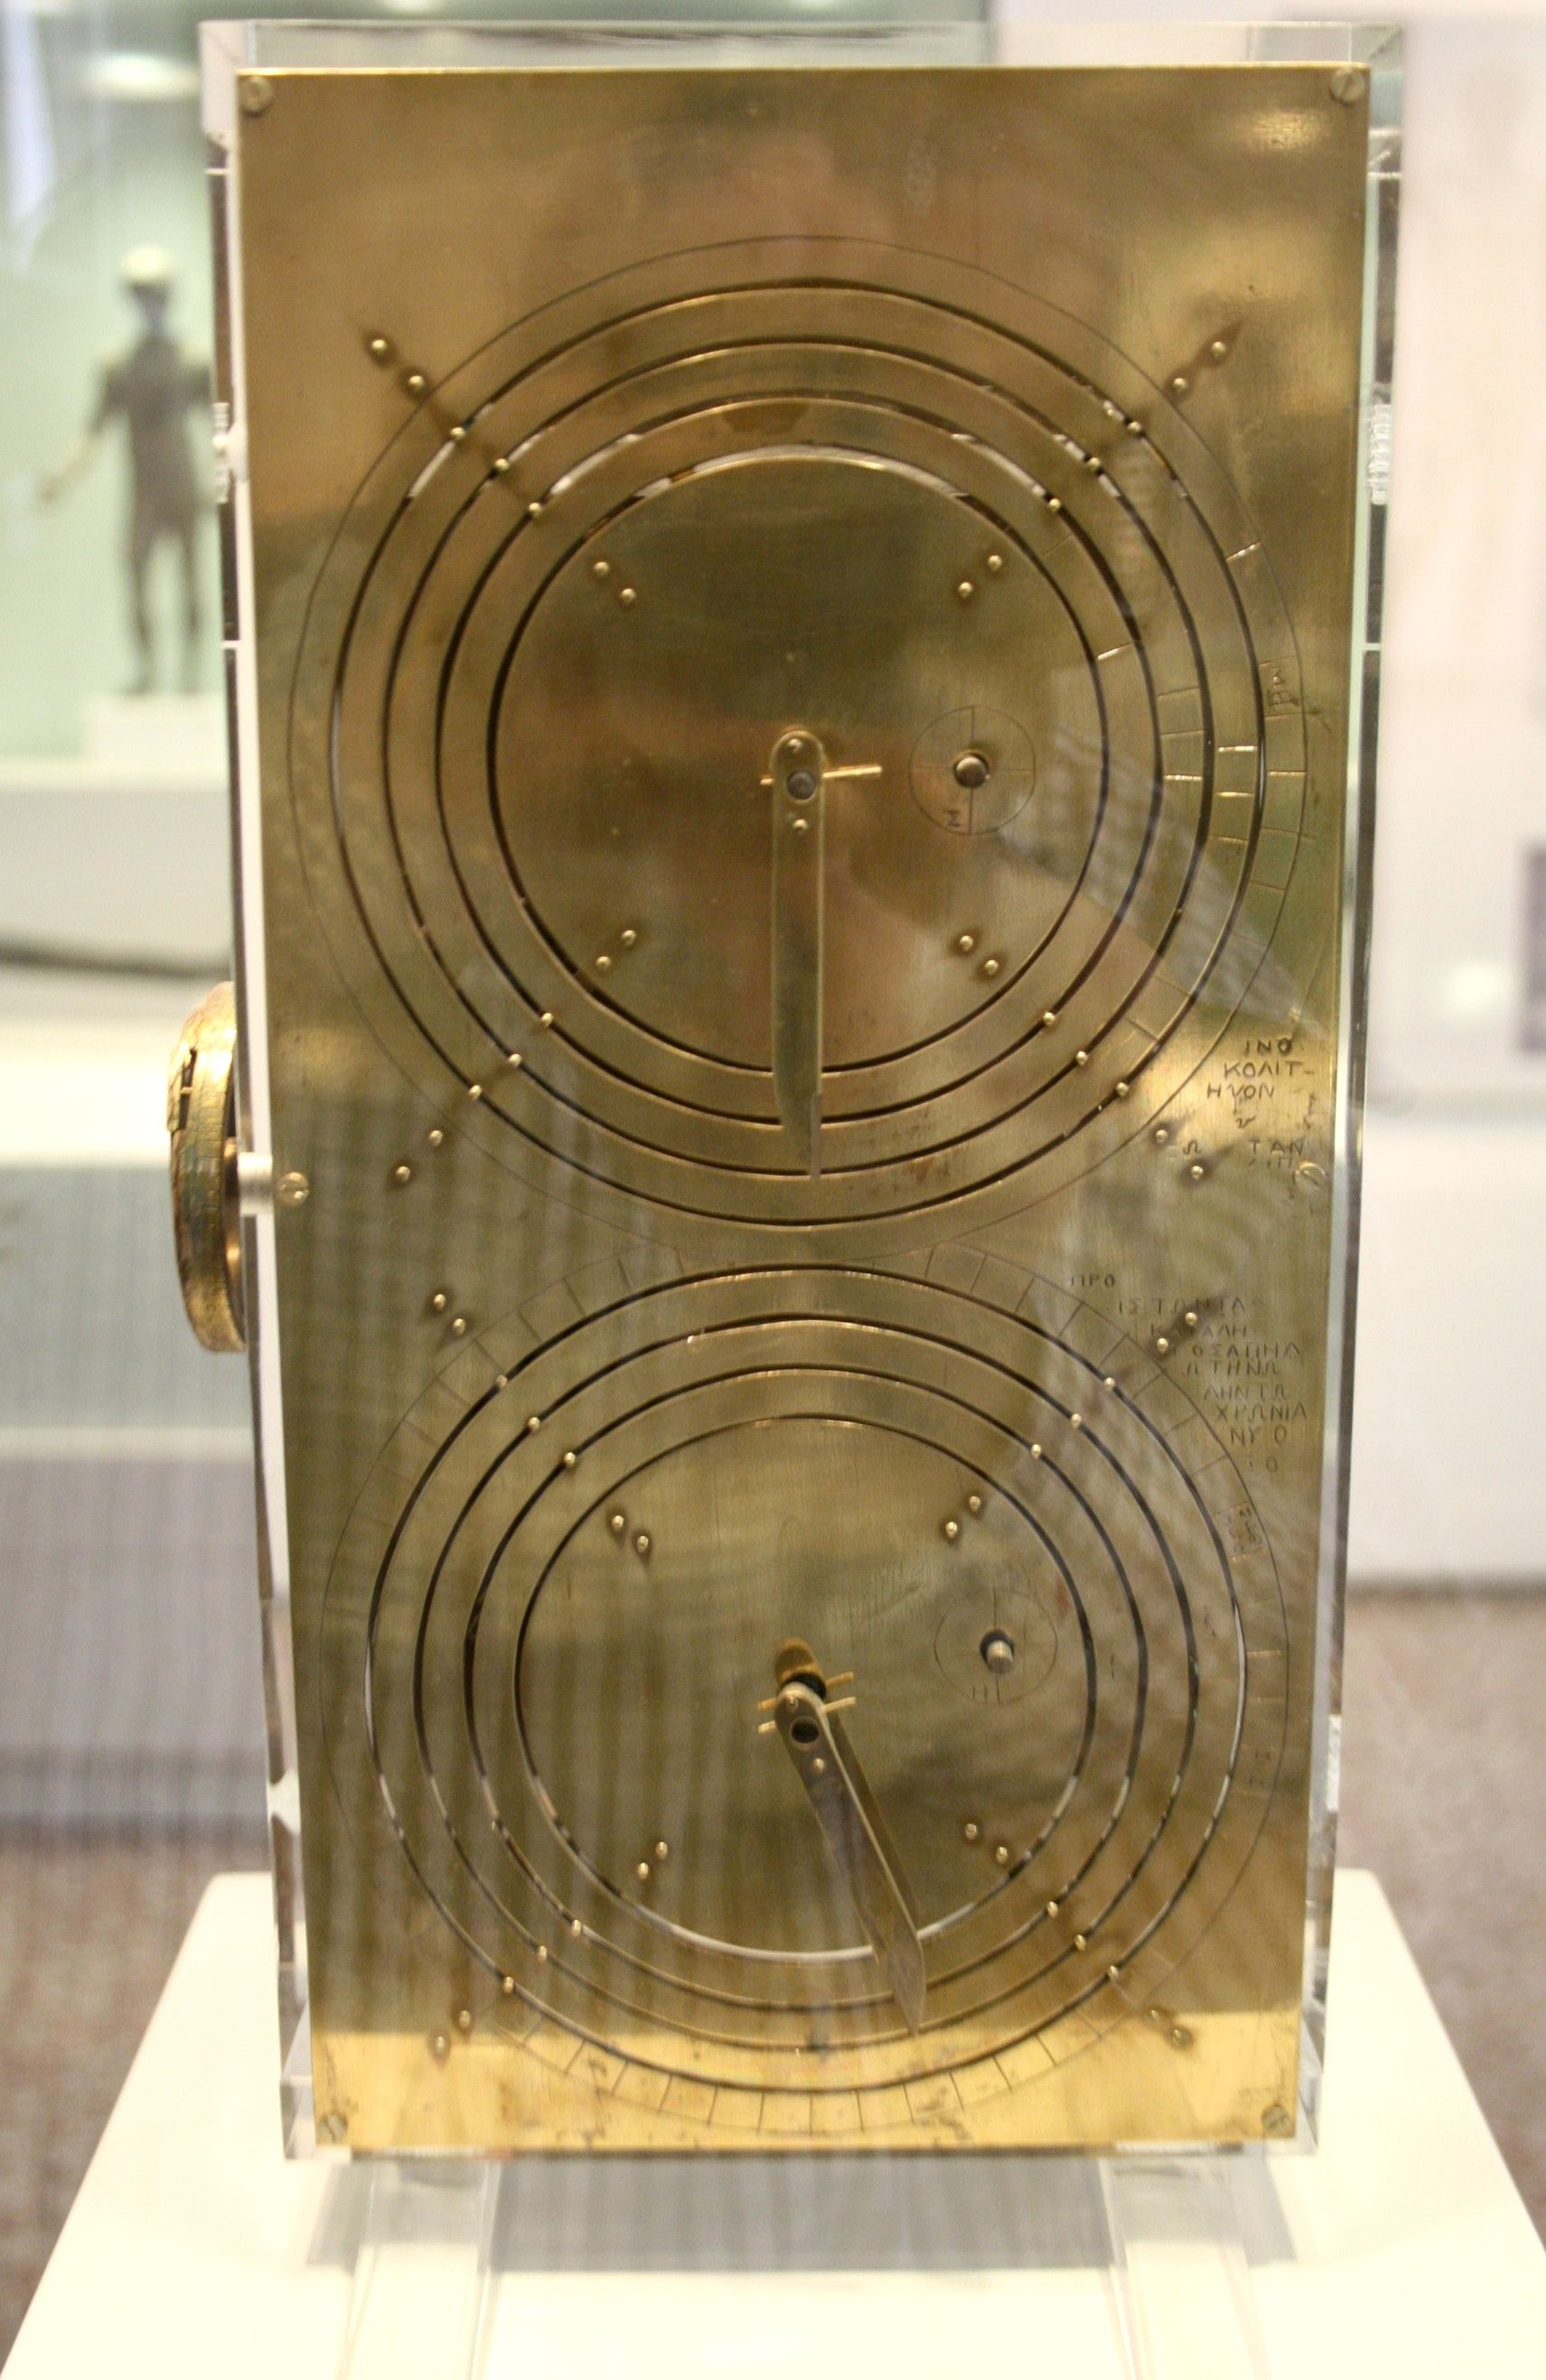 Modern replica of the Antikythera Mechanism, a Hellenistic astronomical computer, on display in room 38 of the National Archaeological Museum in Athens.